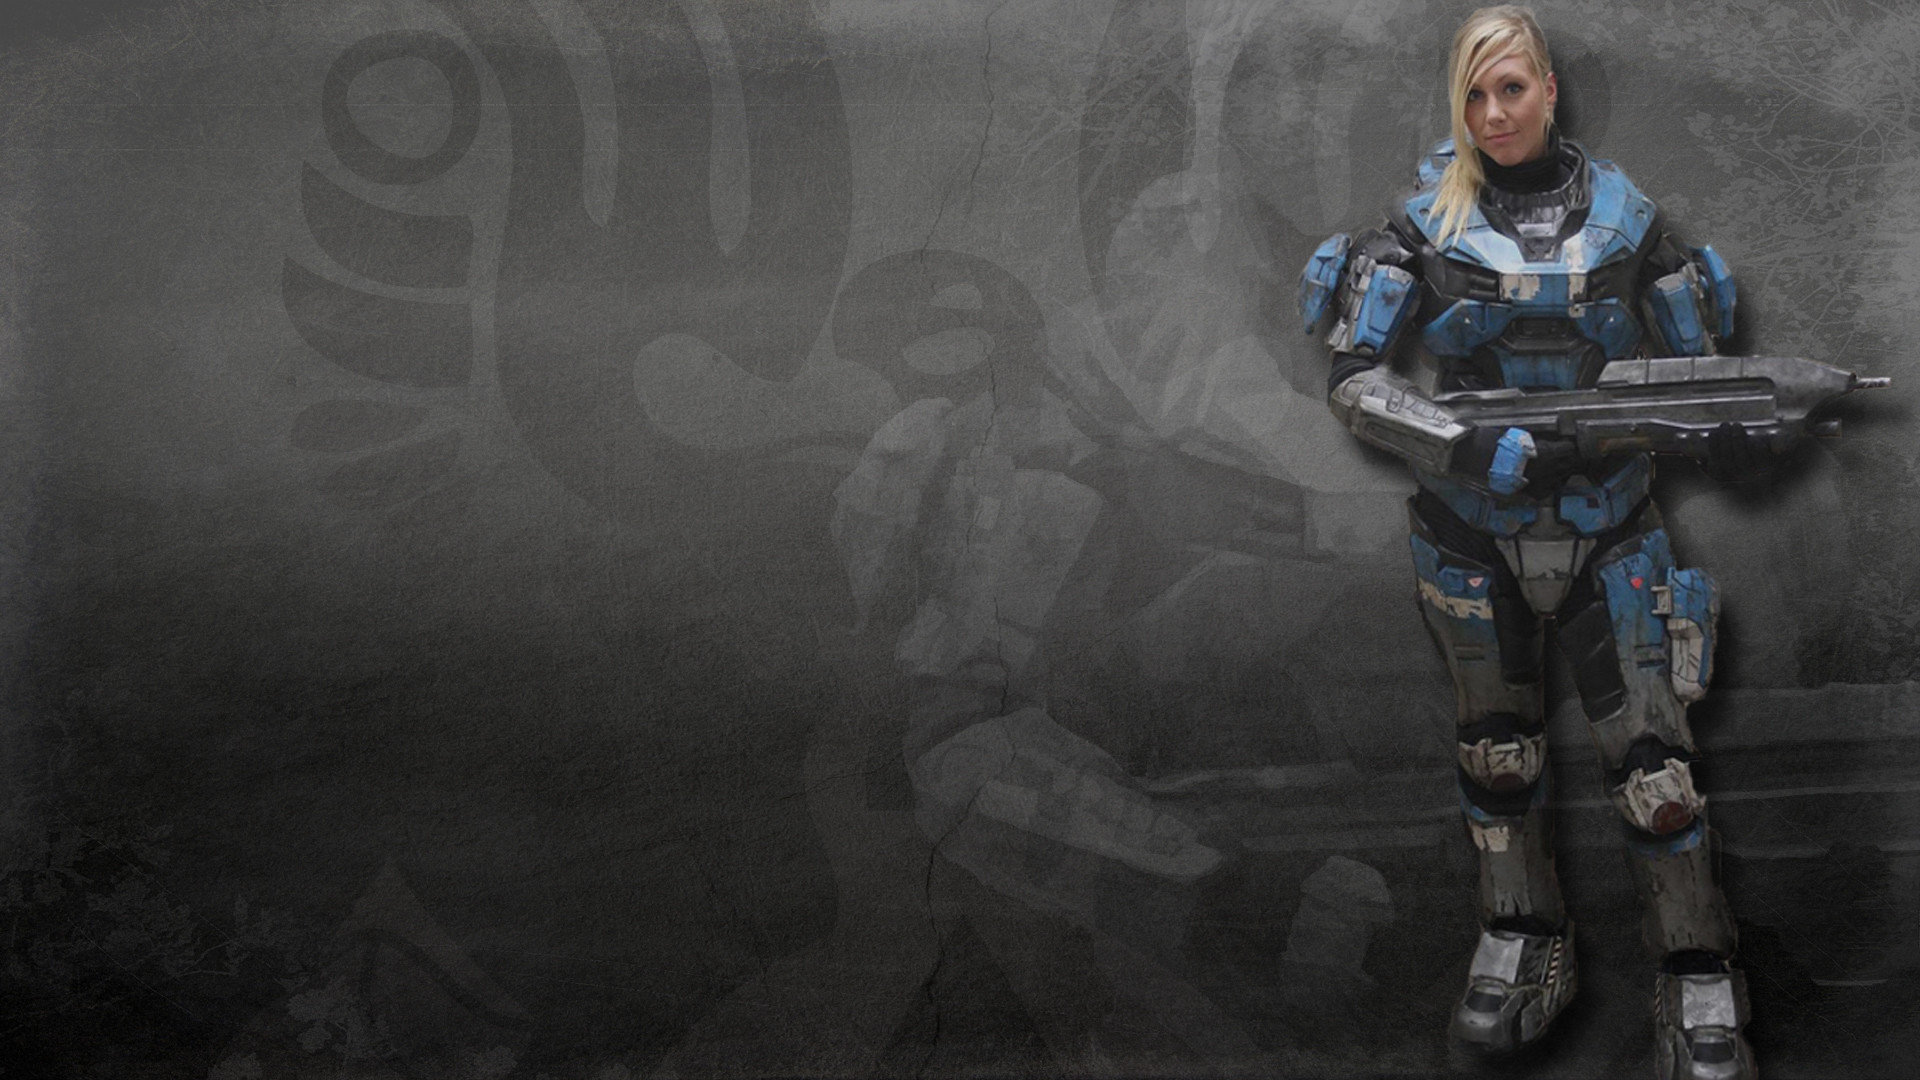 Res: 1920x1080, More Halo Female Wallpapers